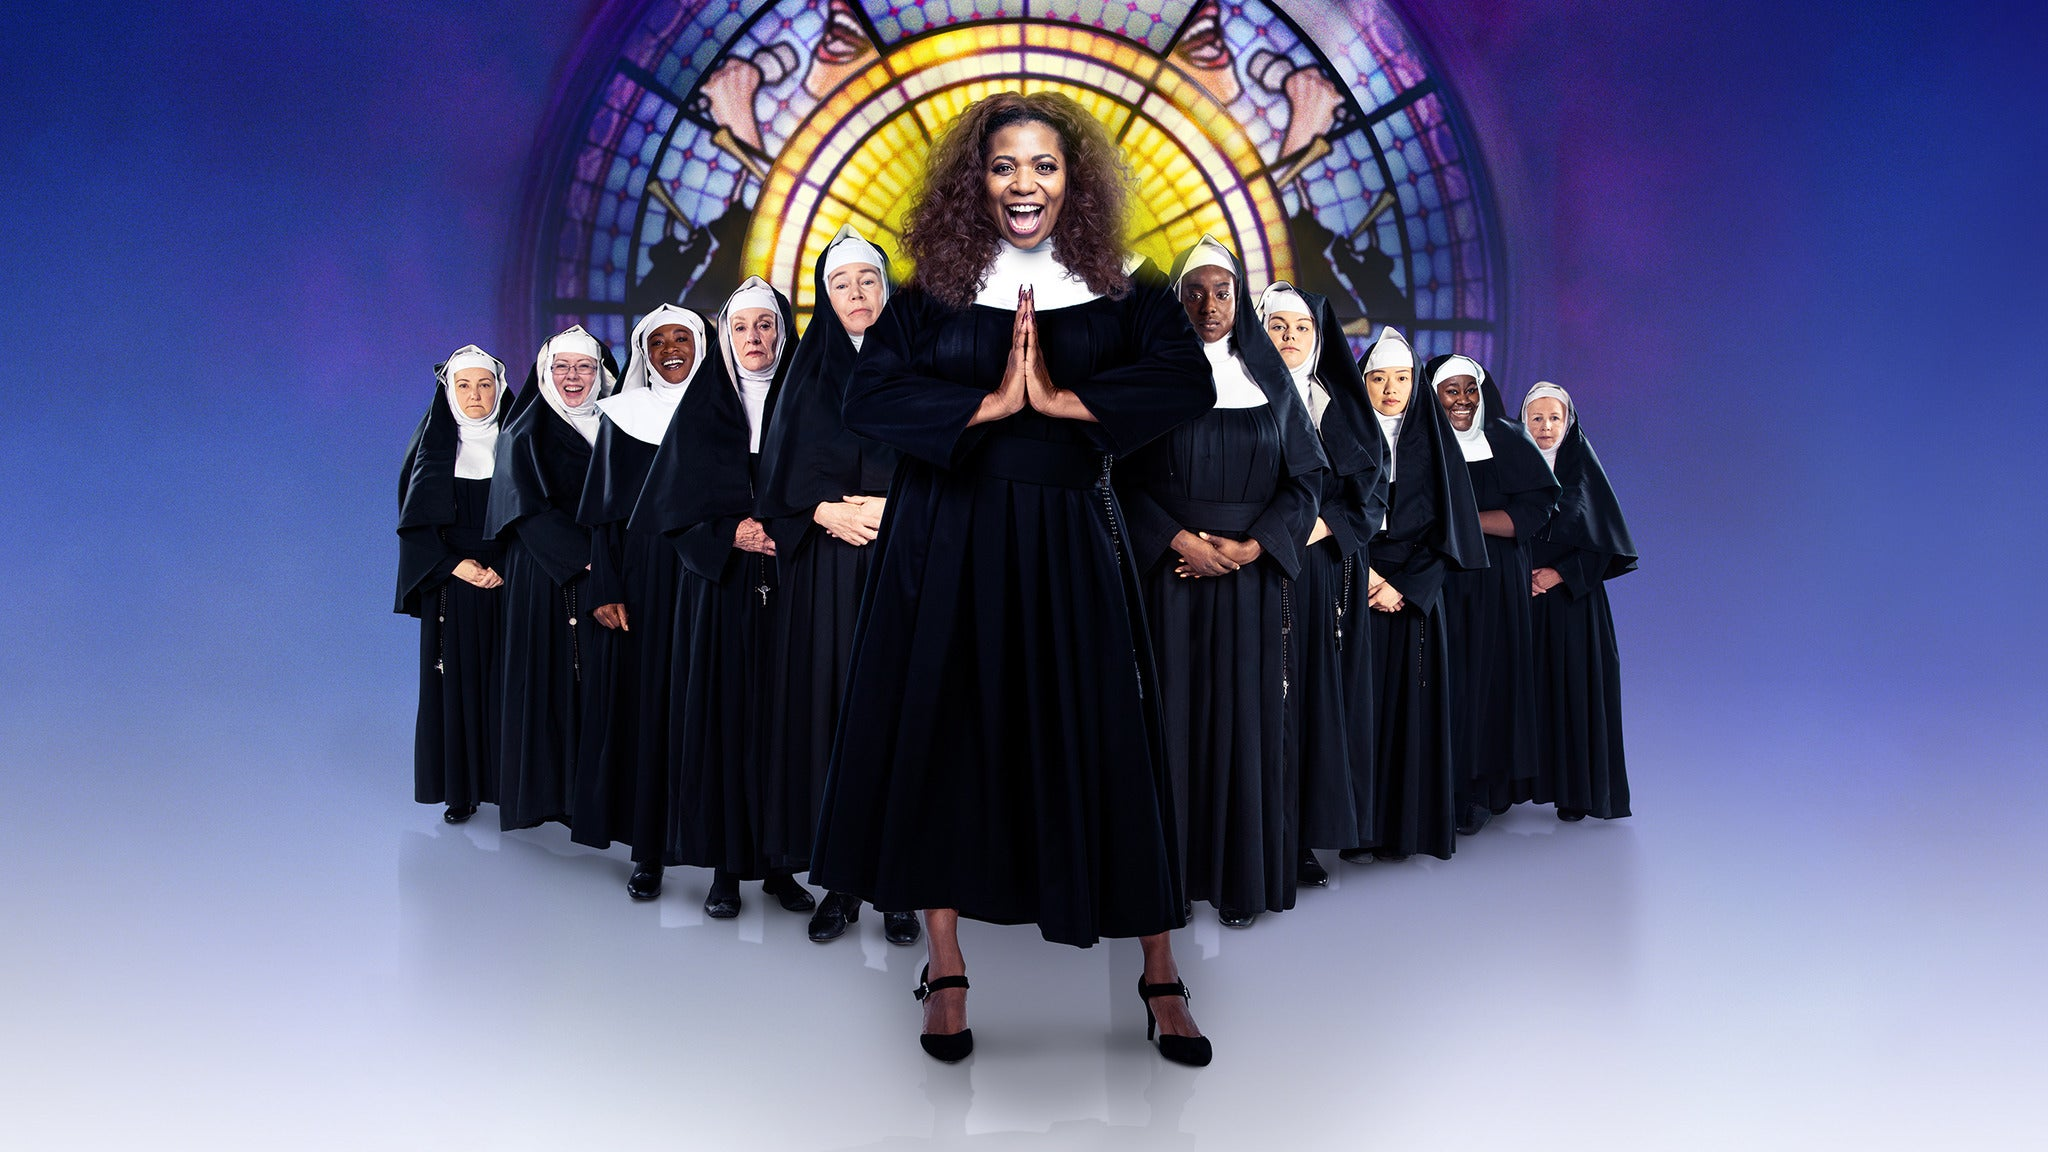 Sister Act at Paper Mill Playhouse - Millburn, NJ 07041